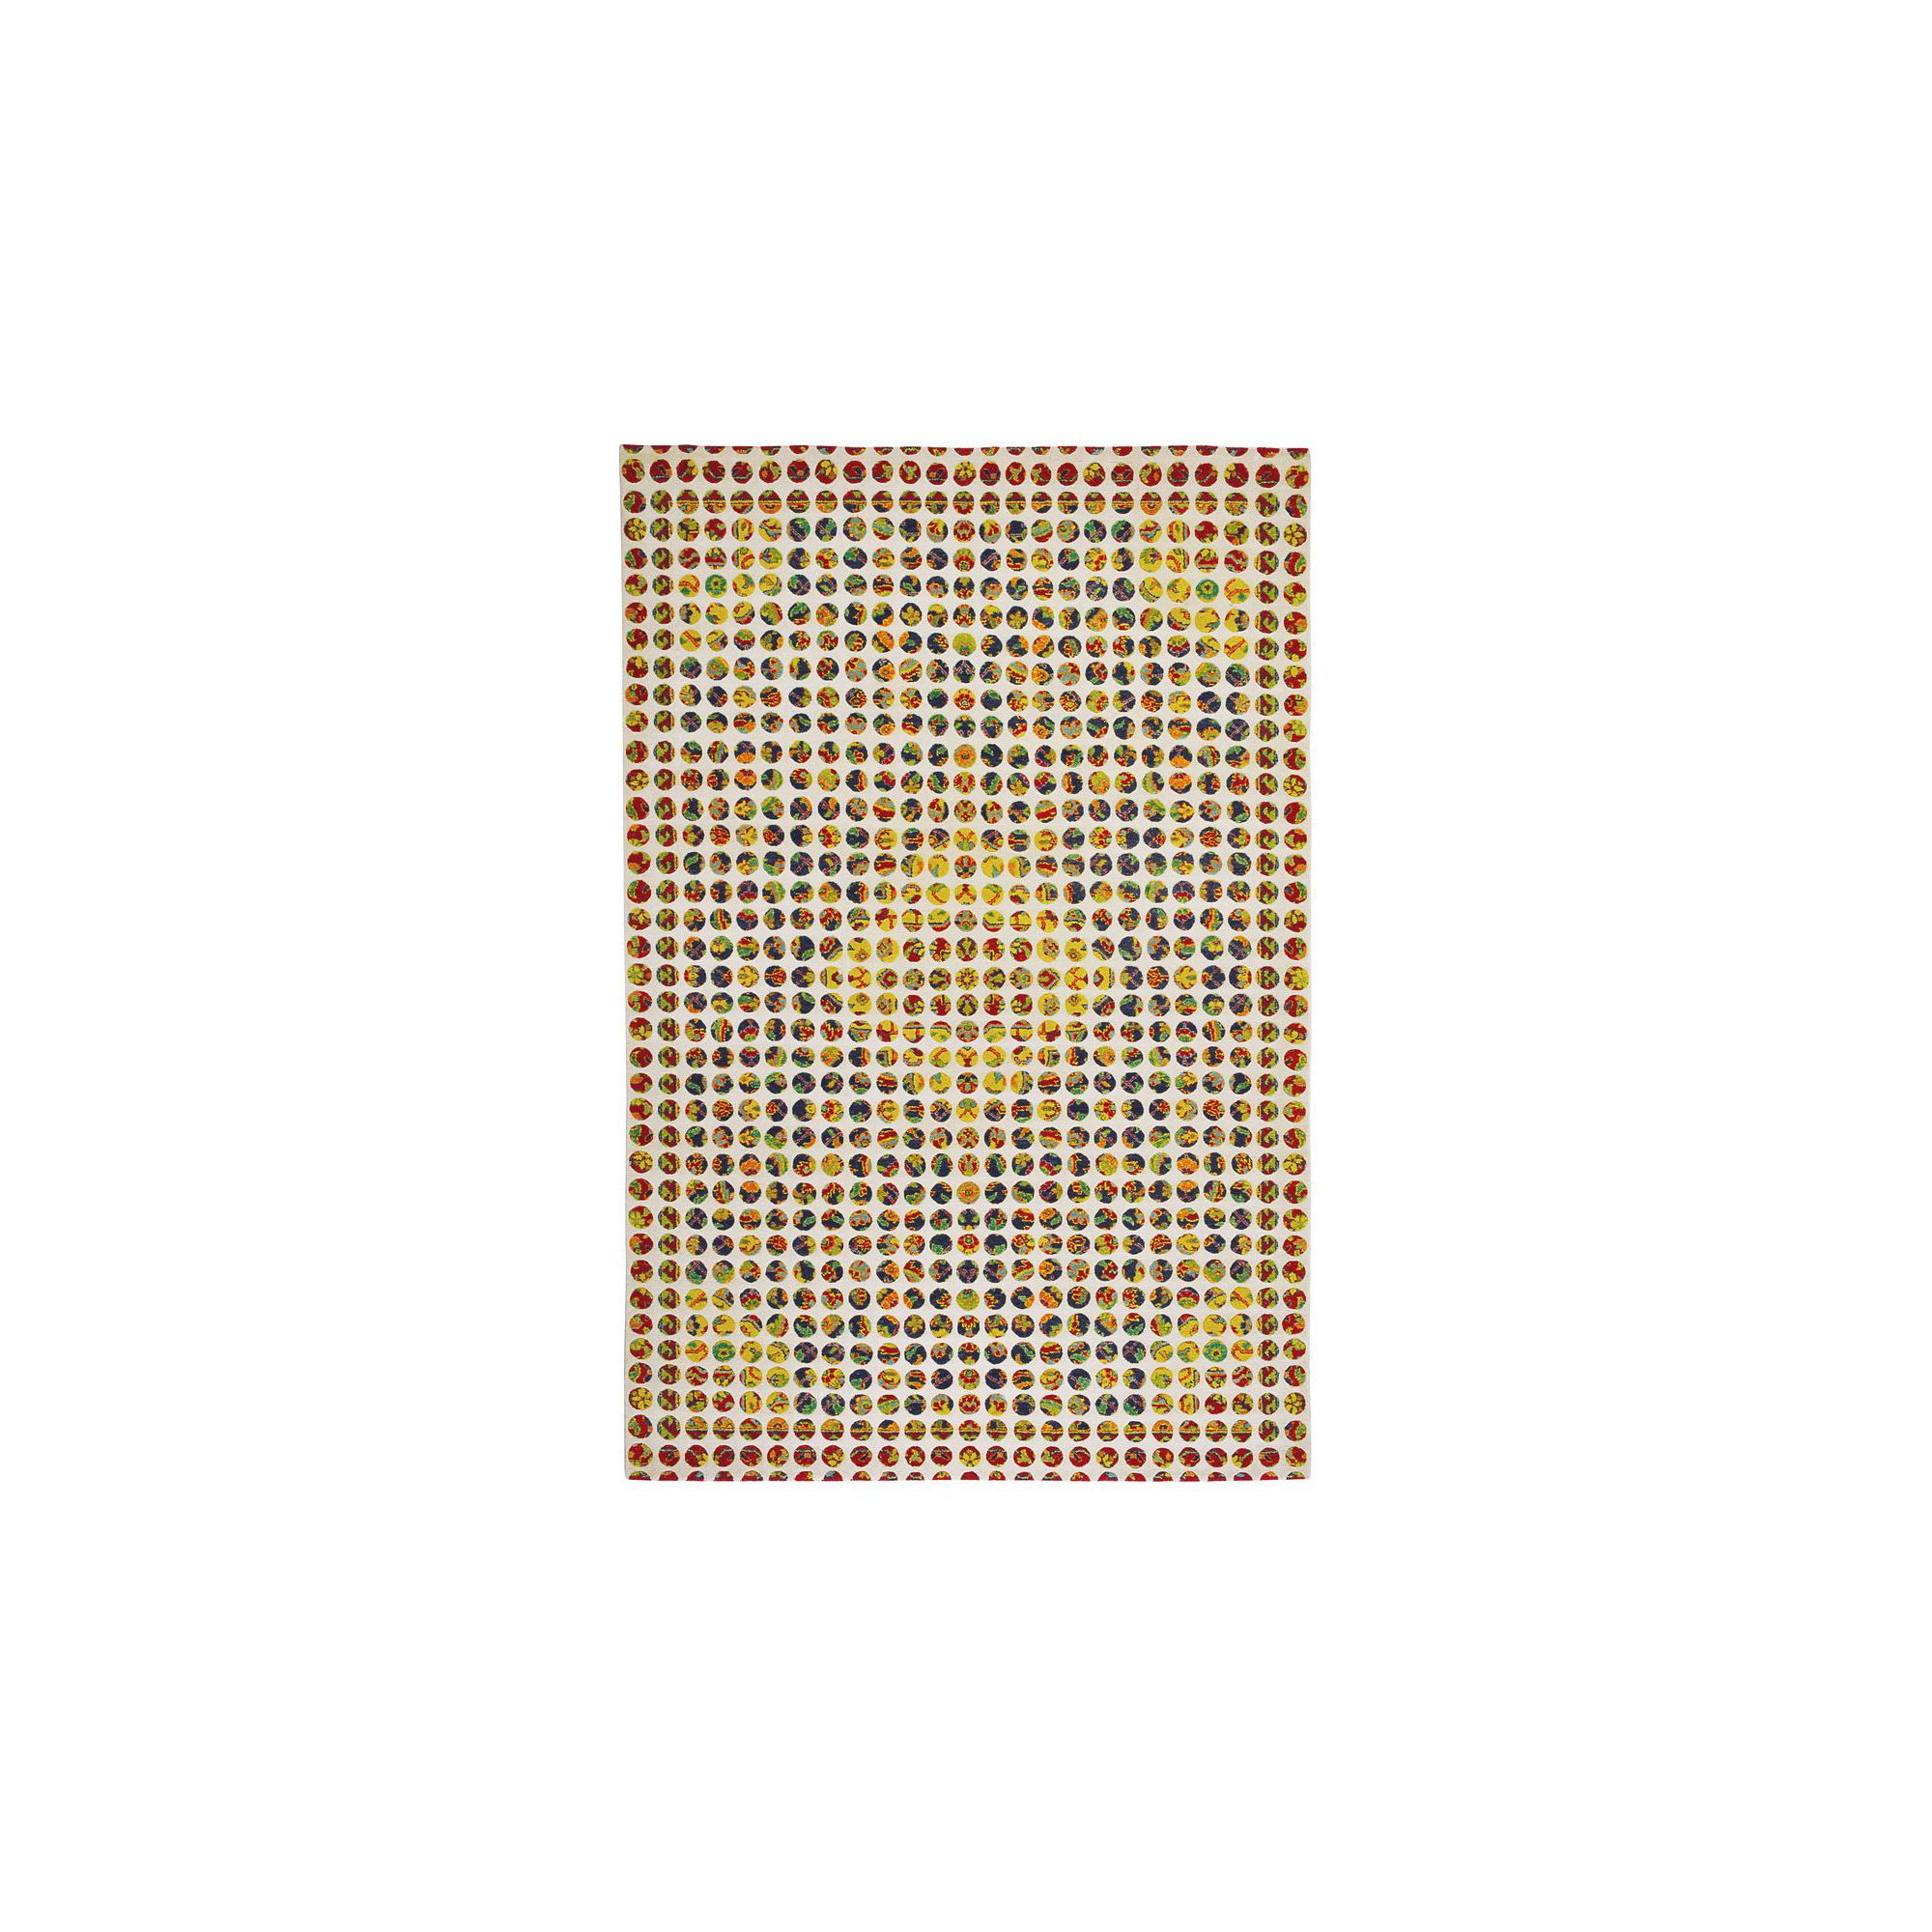 I + I Editions Polka Dots III Knotted Rug - 300cm x 200cm at Tesco Direct